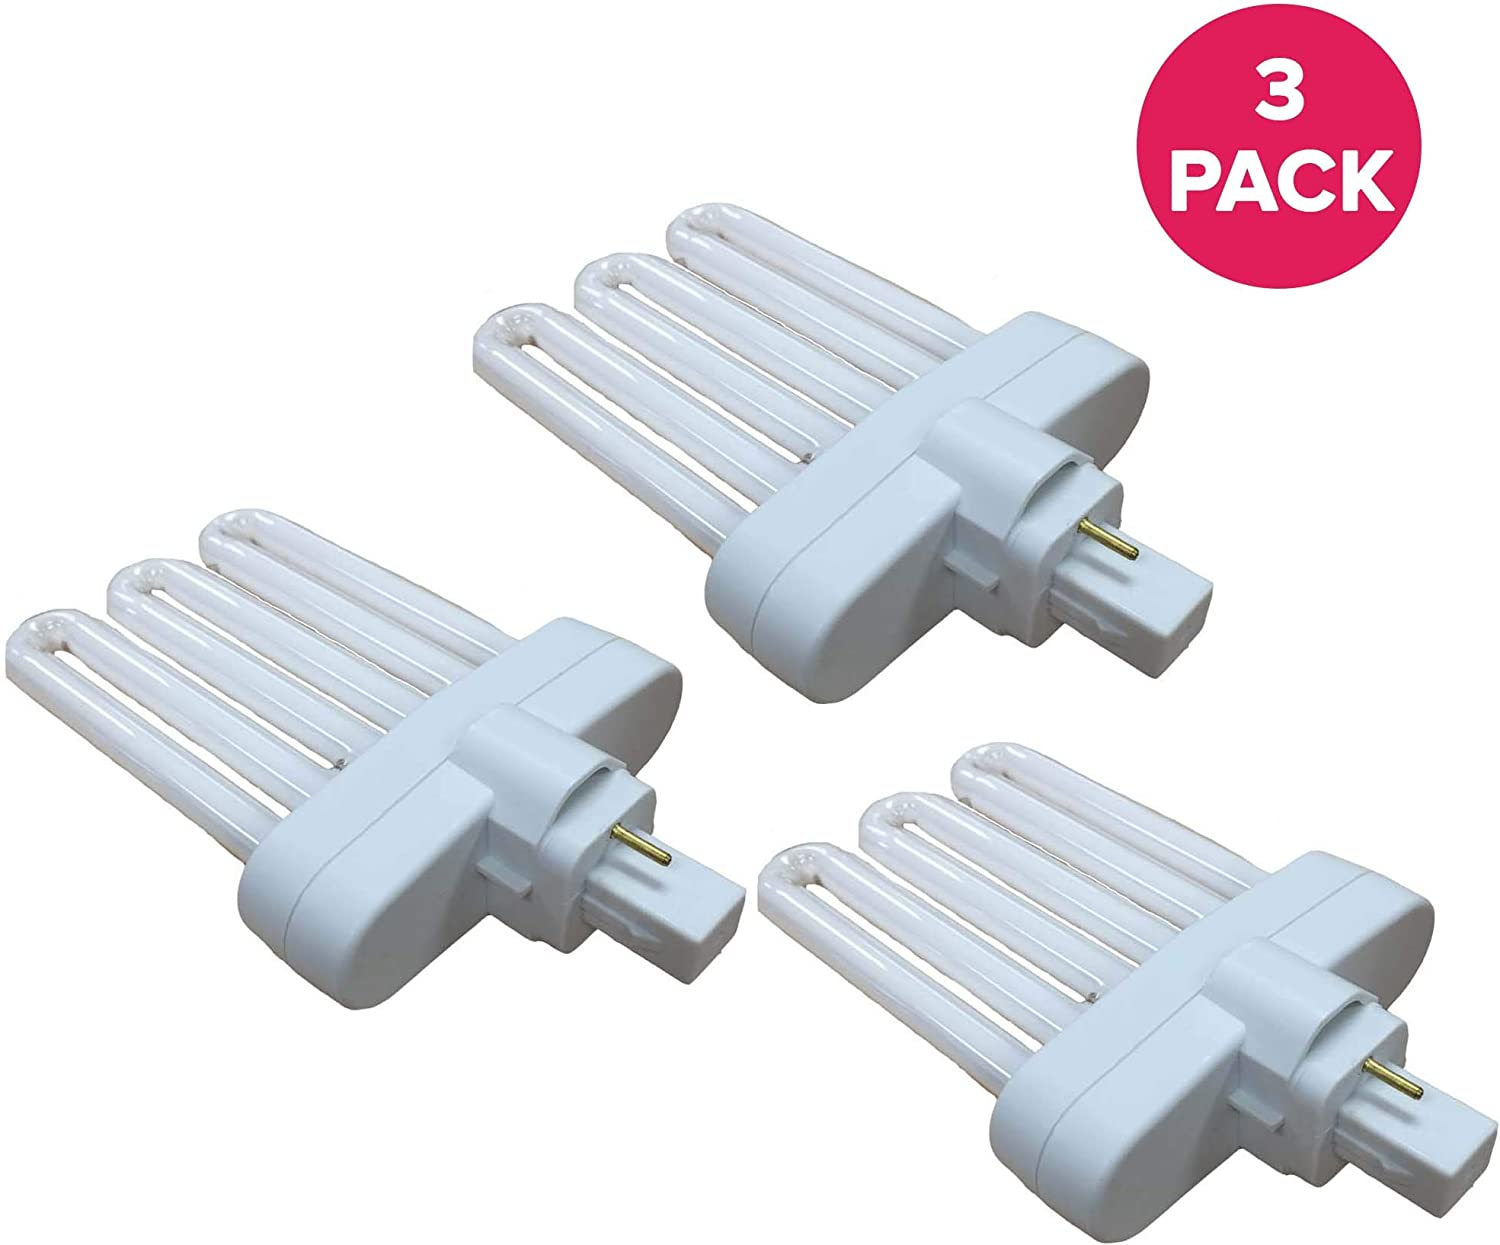 Think Crucial Replacement for Miracle-GRO B Grow Bulb Compatible with AeroGarden Part # 970904-0200,100340 & Models AeroGarden 3,3SL,3 Elite,6,7,Chef in A Box,Chef in A Box Elite (3 Pack)